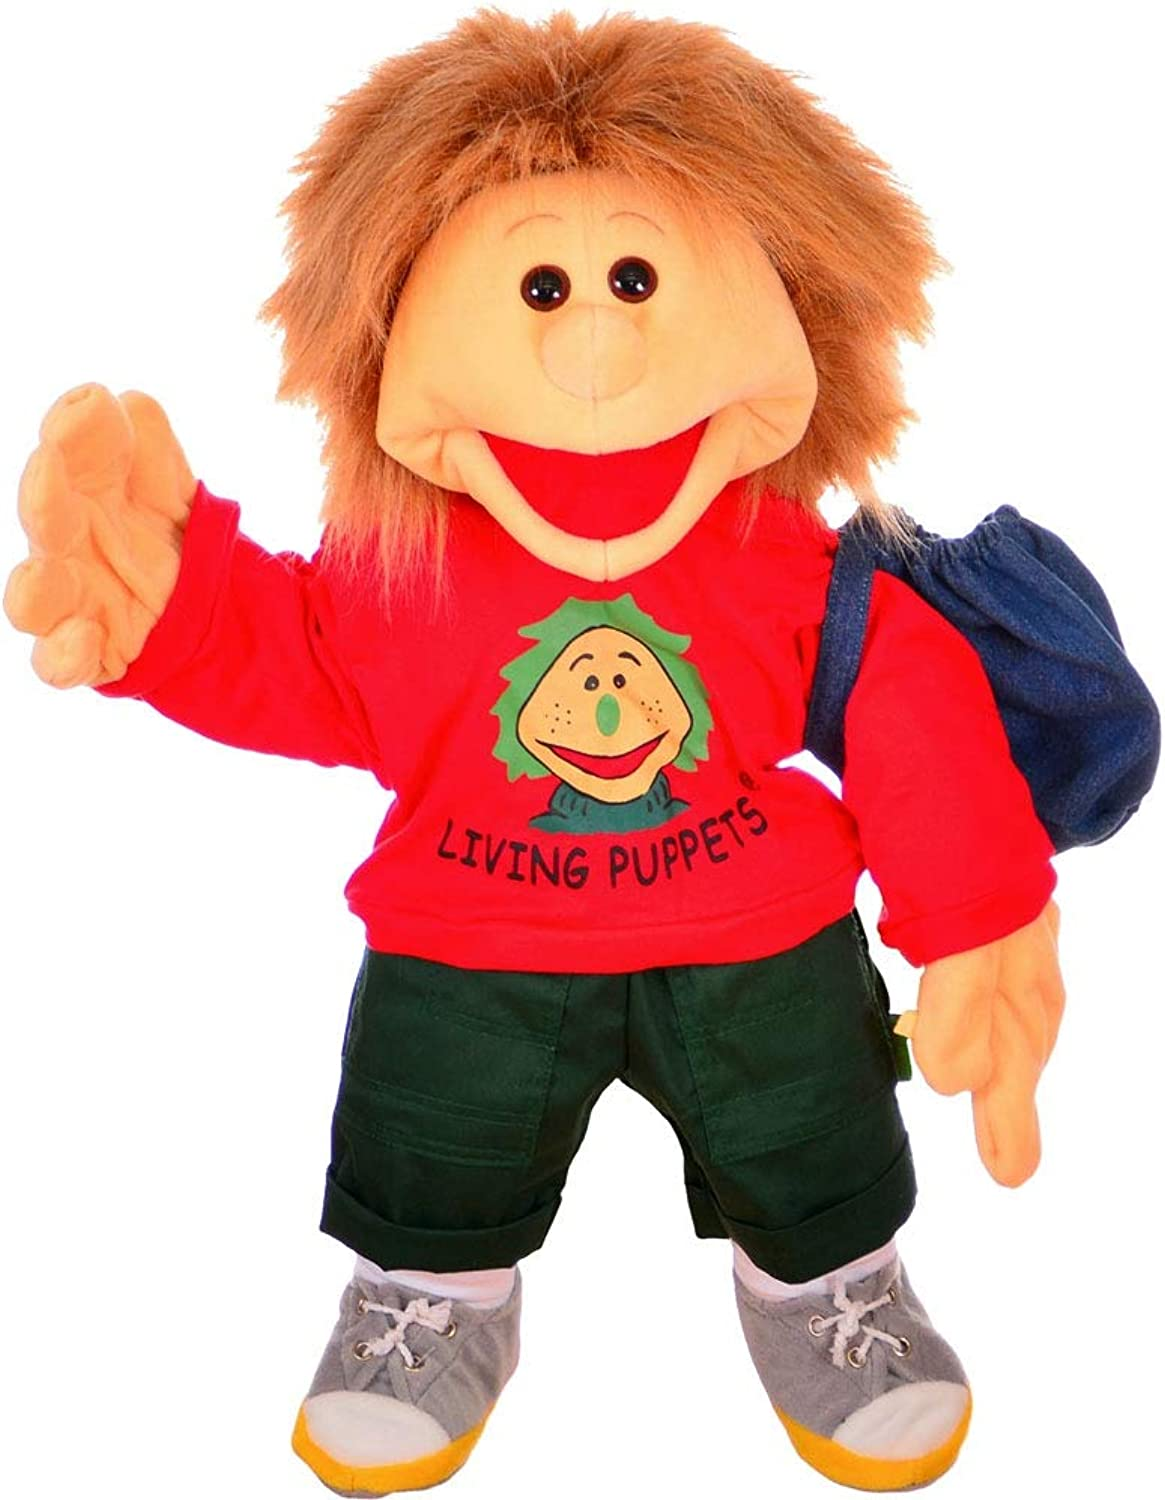 Living Puppets Groe Handpuppe Florian mit Badehose Groesse  65 cm Farbe  rot Lieferumfang  Badehose im Rucksack MA000W230